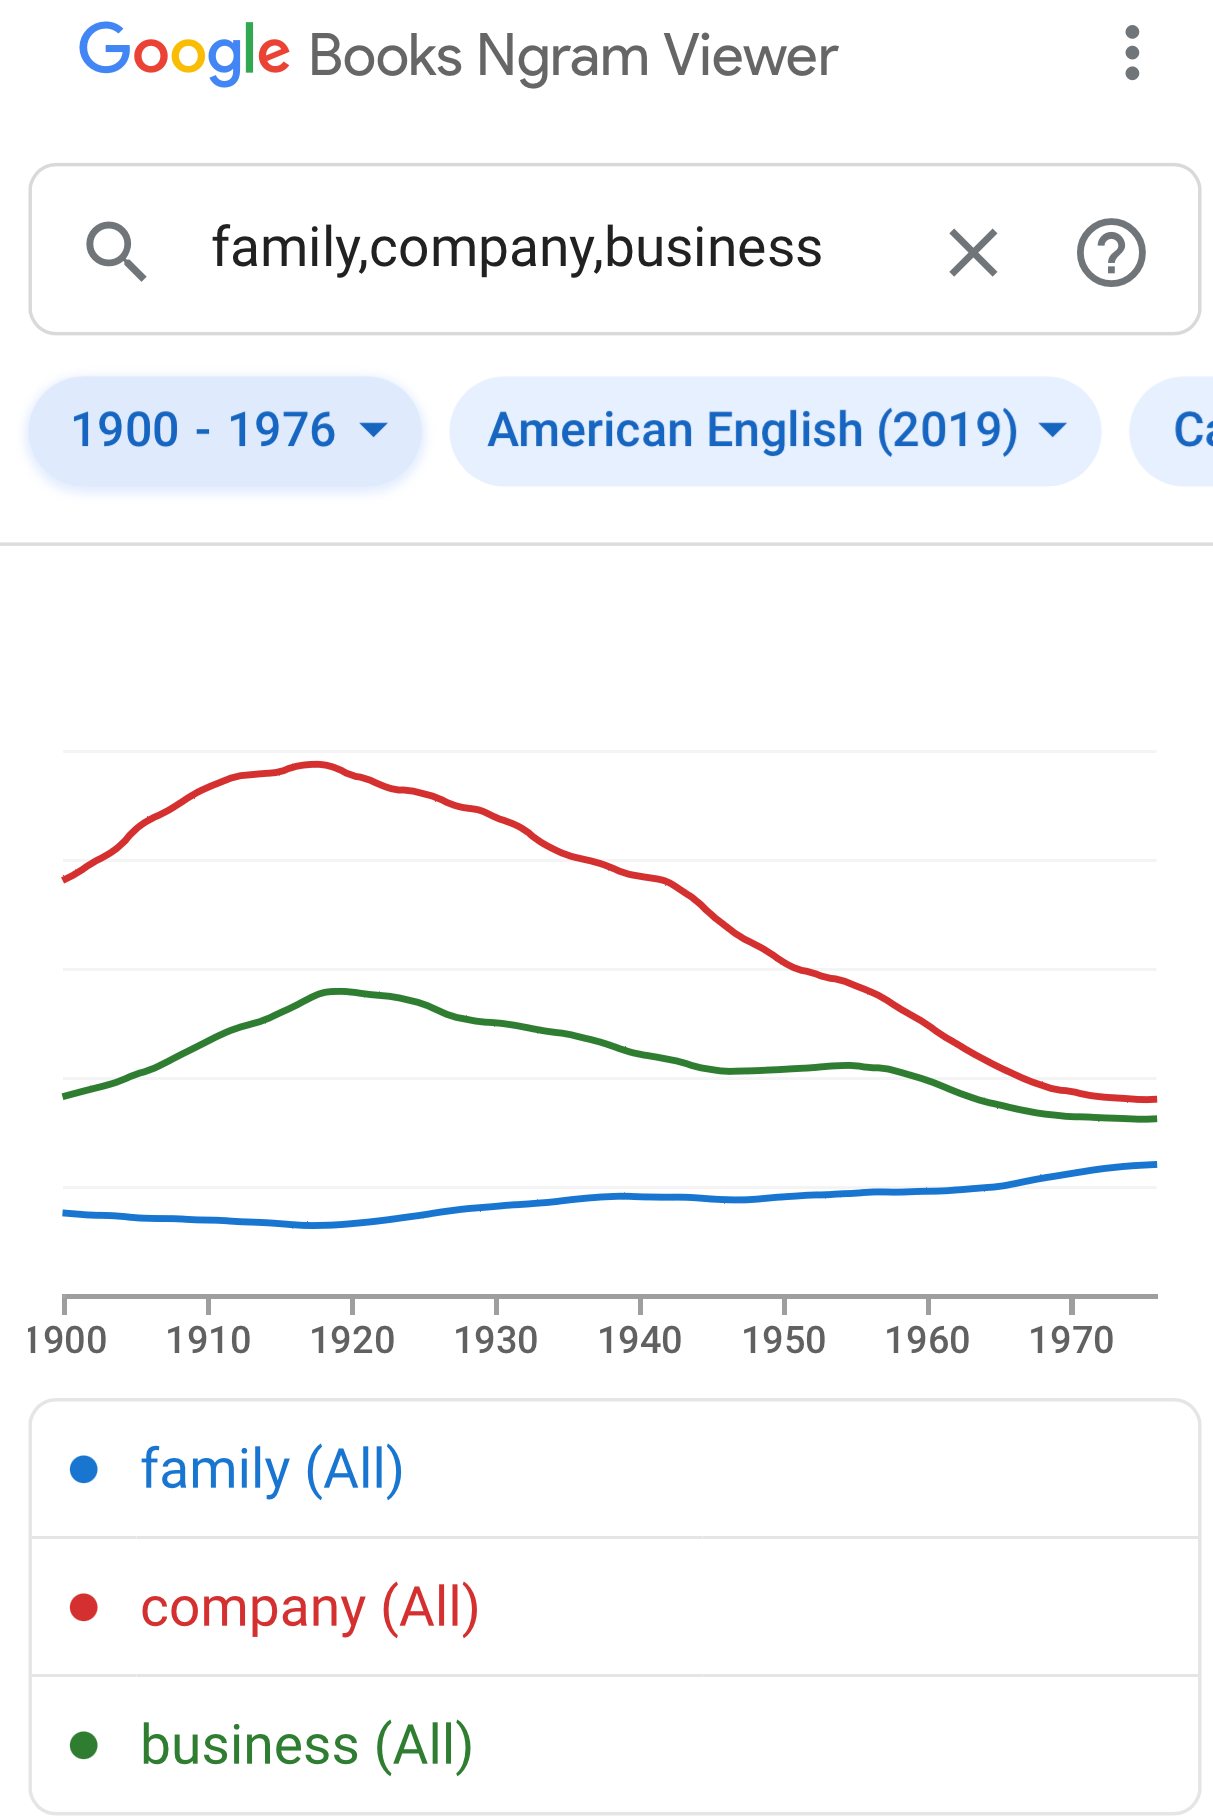 Google analysis of the interplay of the words Family, Company, Business